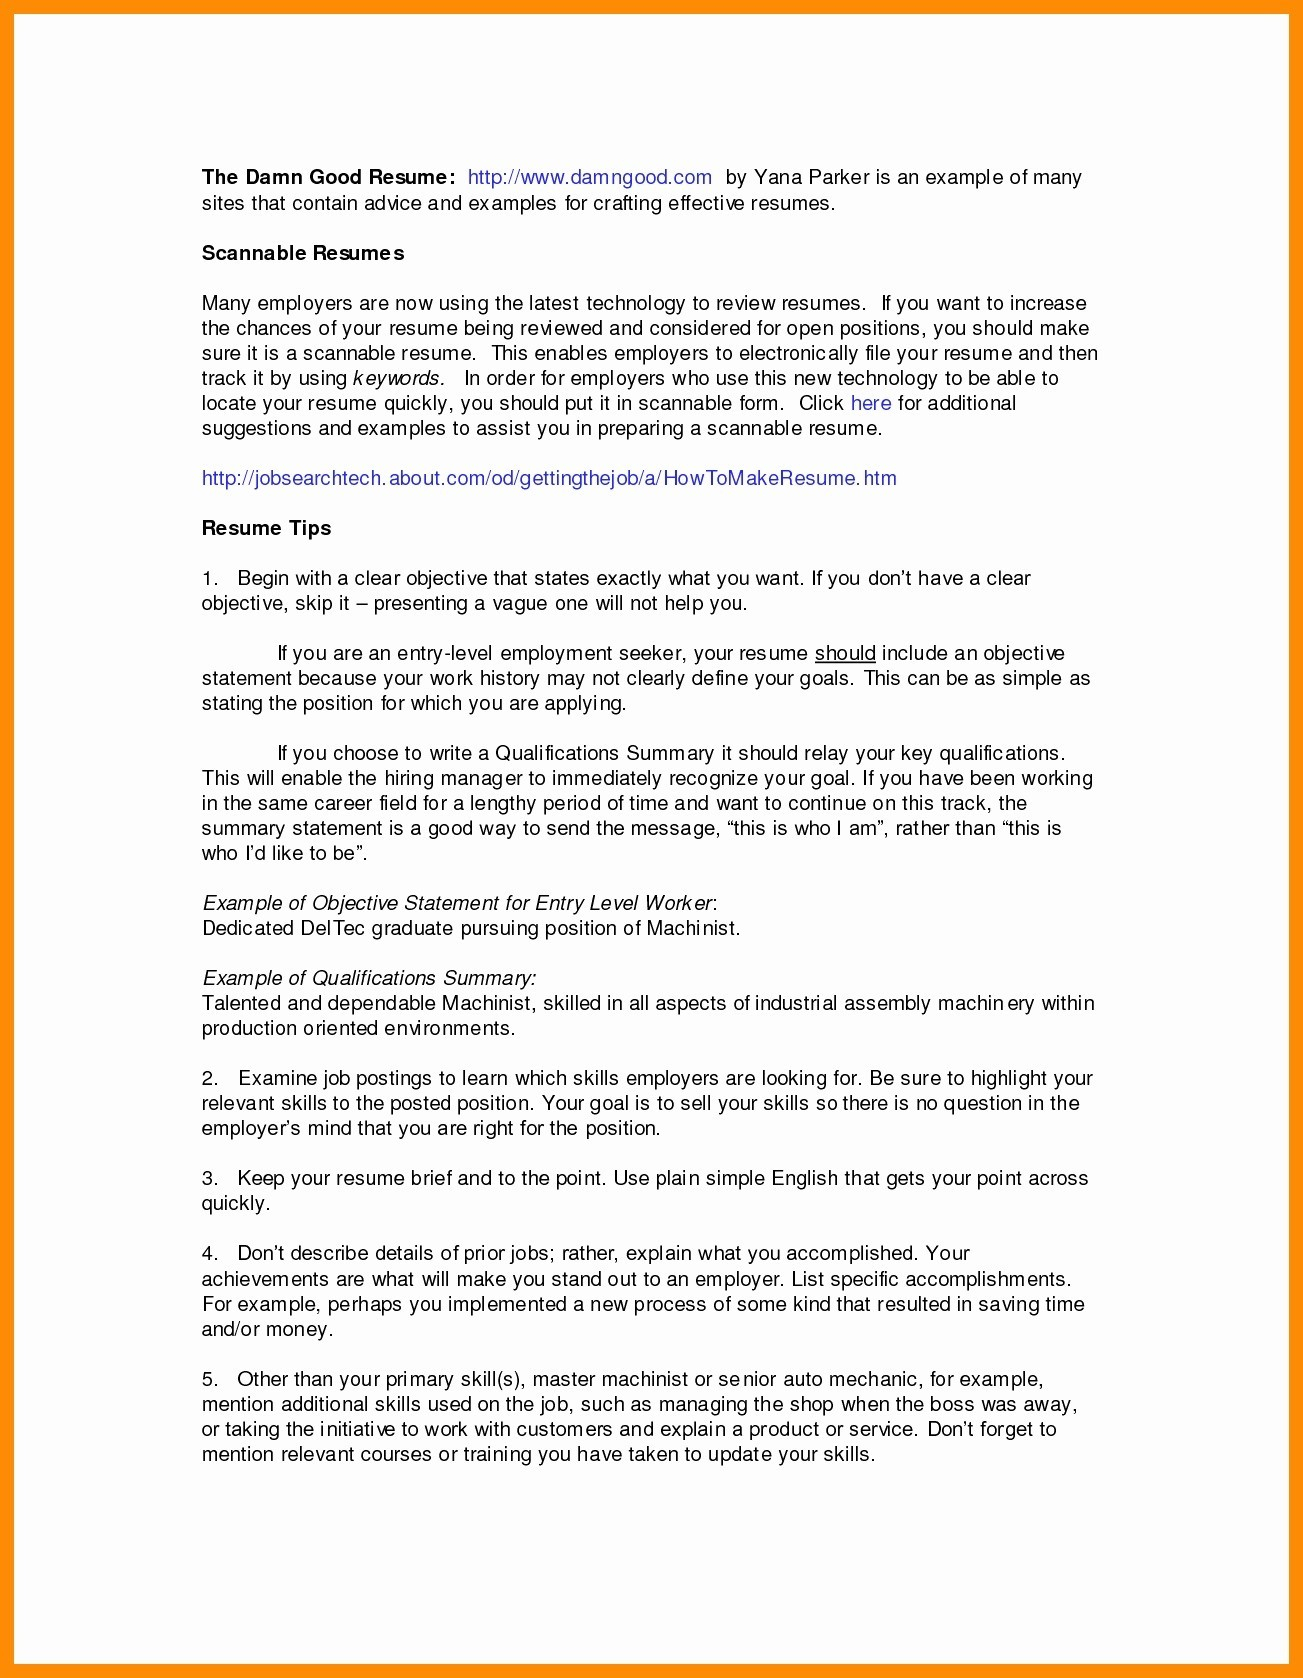 Medical assistant Summary for Resume - Physician assistant Resume Template Fresh Resume Sample for Medical